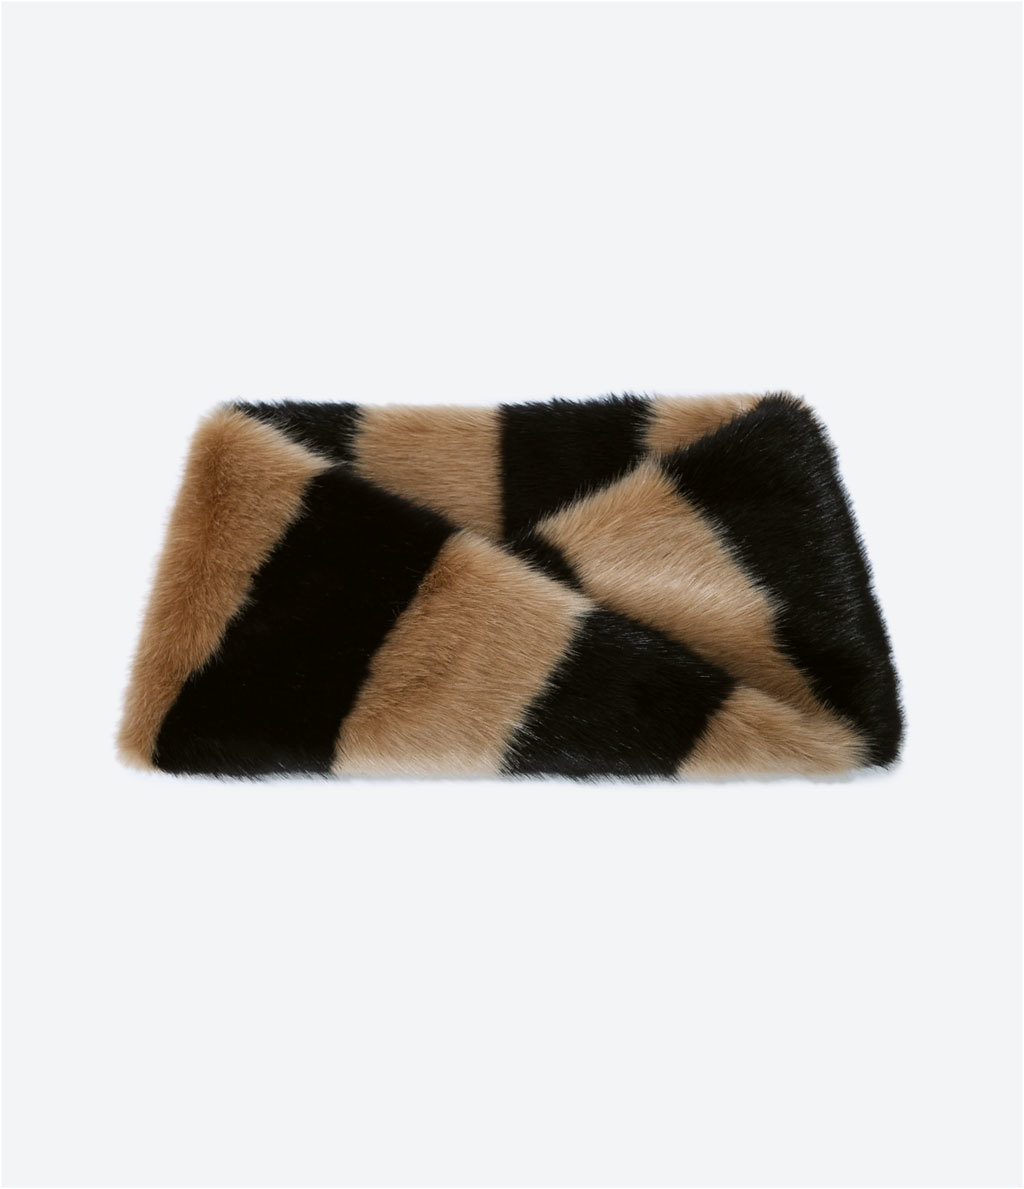 Crossover Snood - secondary colour: chocolate brown; predominant colour: camel; occasions: casual, occasion, creative work; type of pattern: heavy; style: snood; size: standard; material: fur; pattern: striped; embellishment: fur; season: a/w 2014